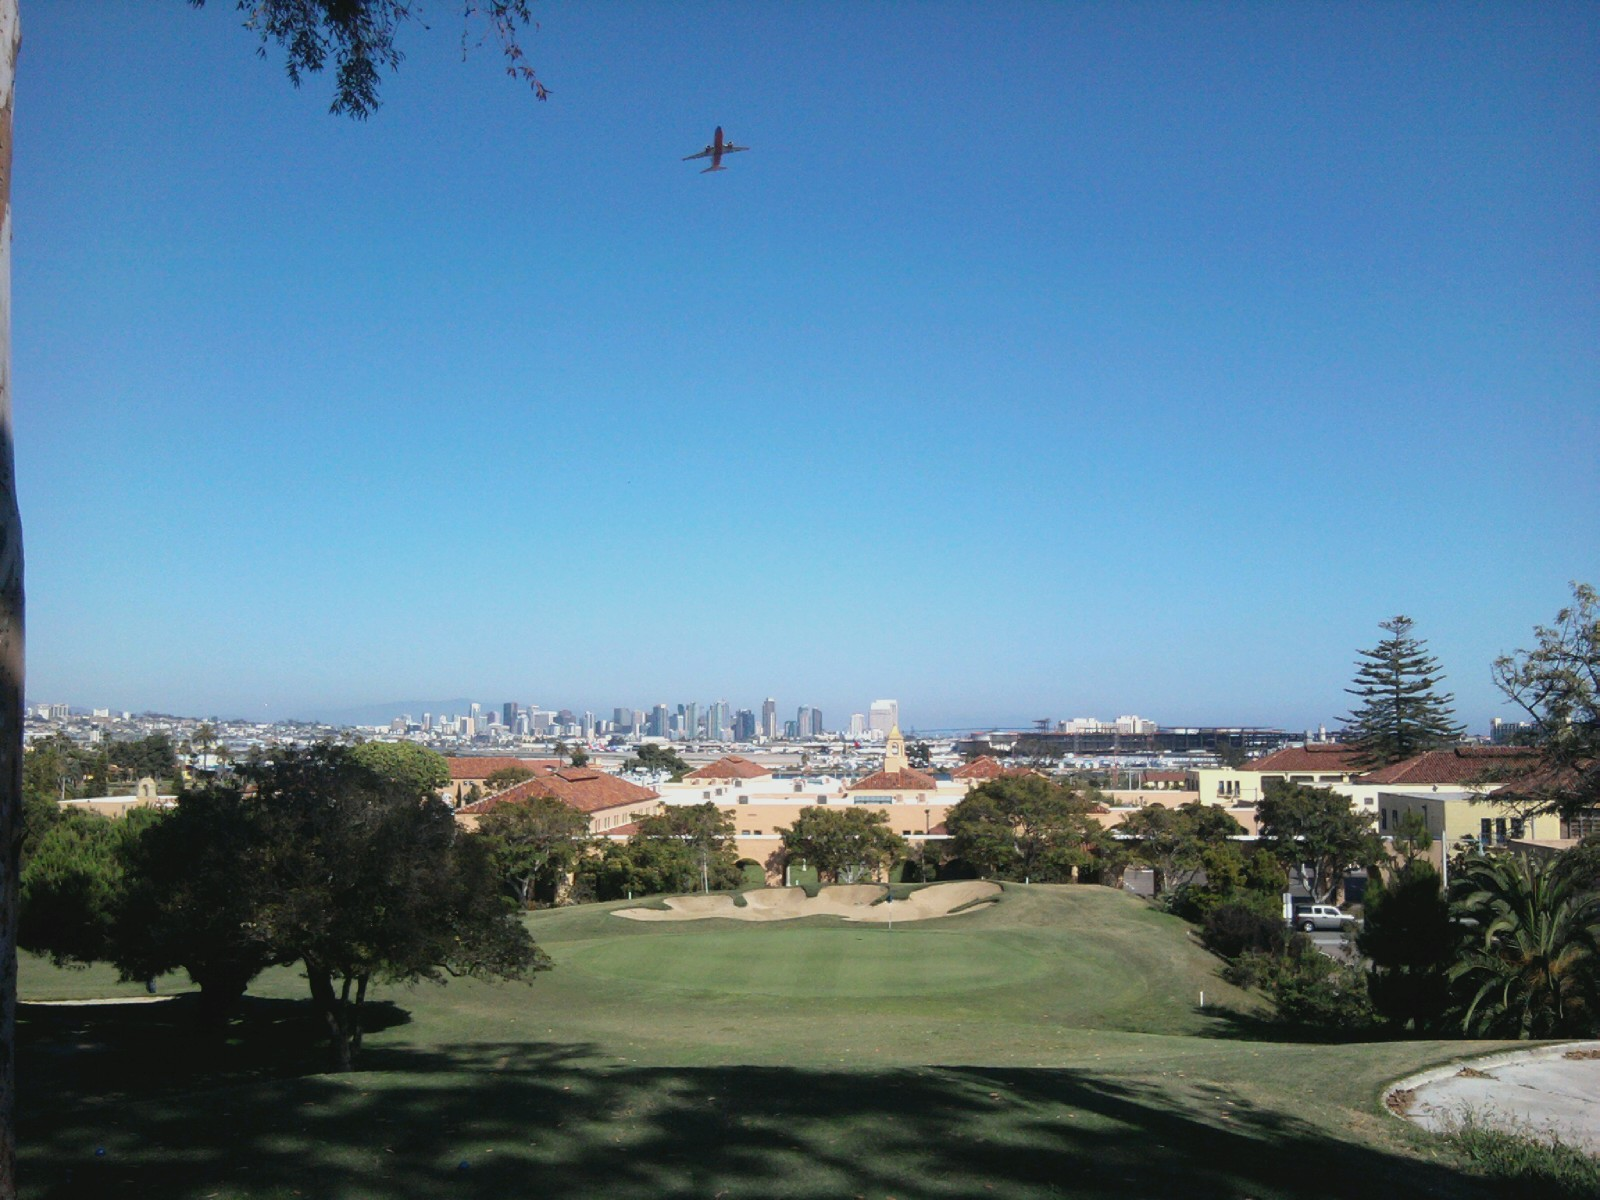 Golf picture, from sail-ho golf course. 5th hole overlooking downtown, with airplanes going by..